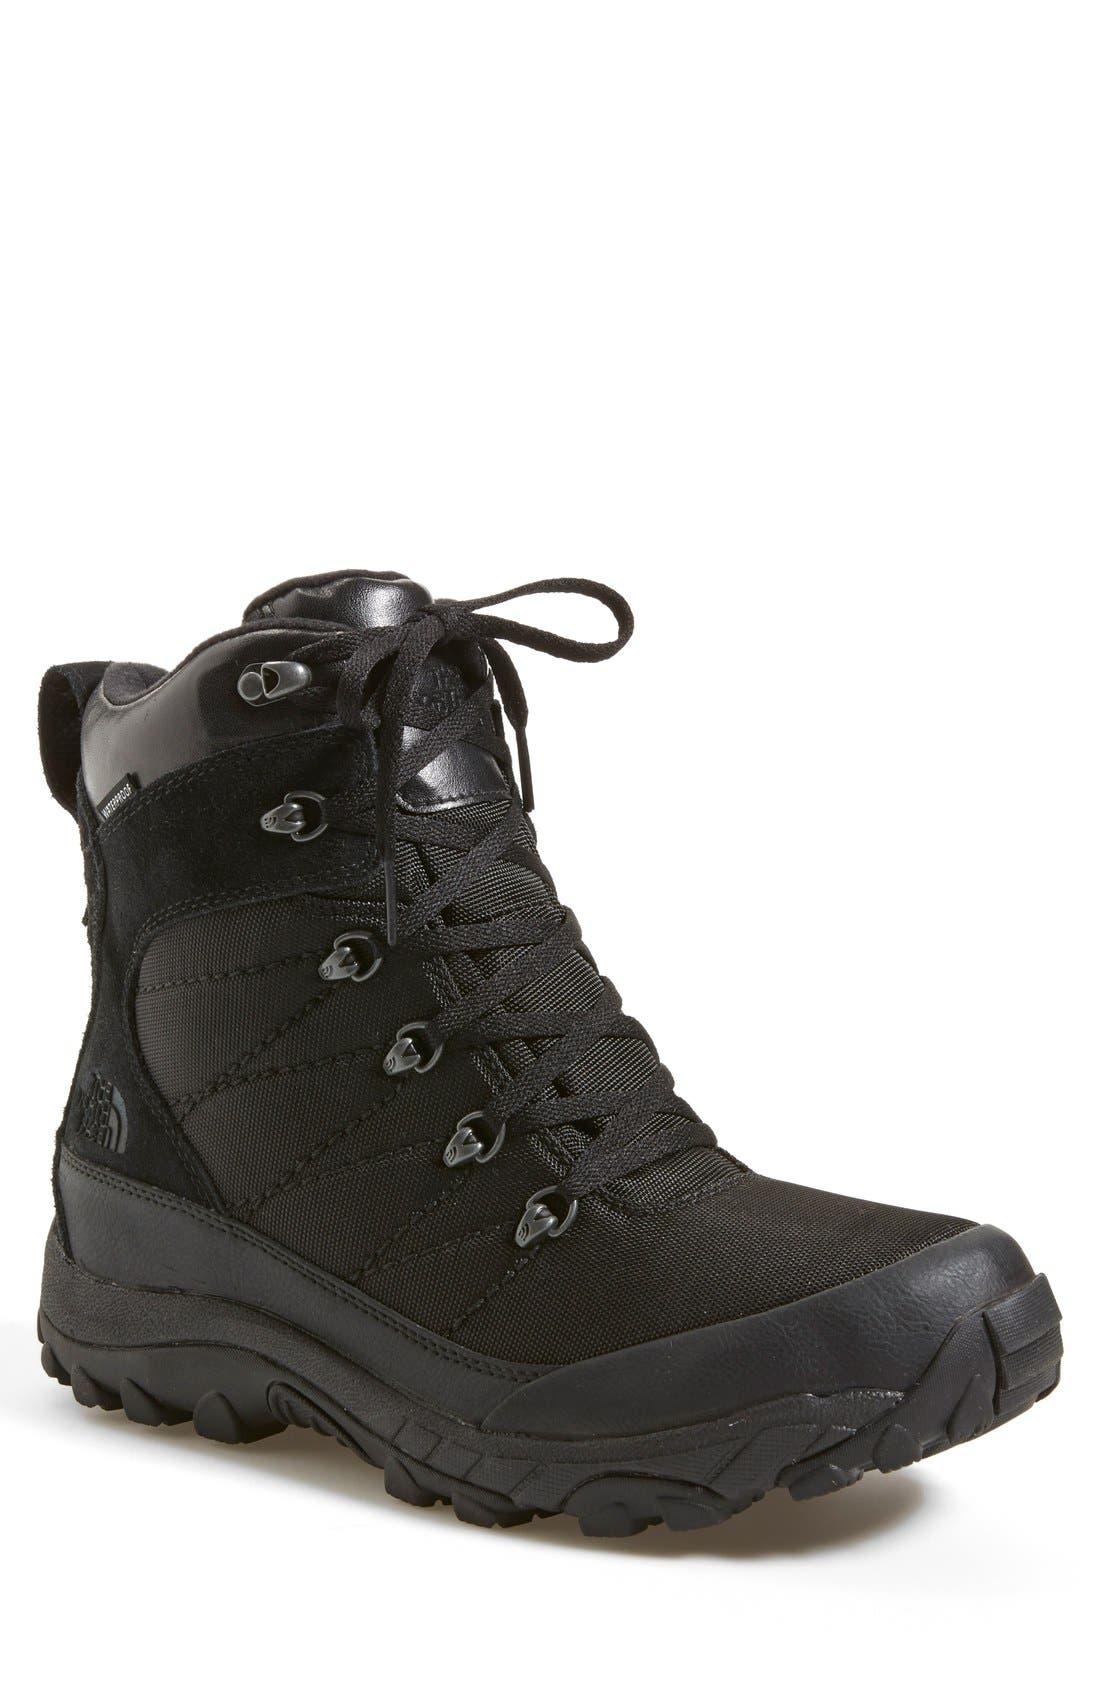 'Chilkat' Snow Boot,                         Main,                         color, Tnf Black/ Tnf Black